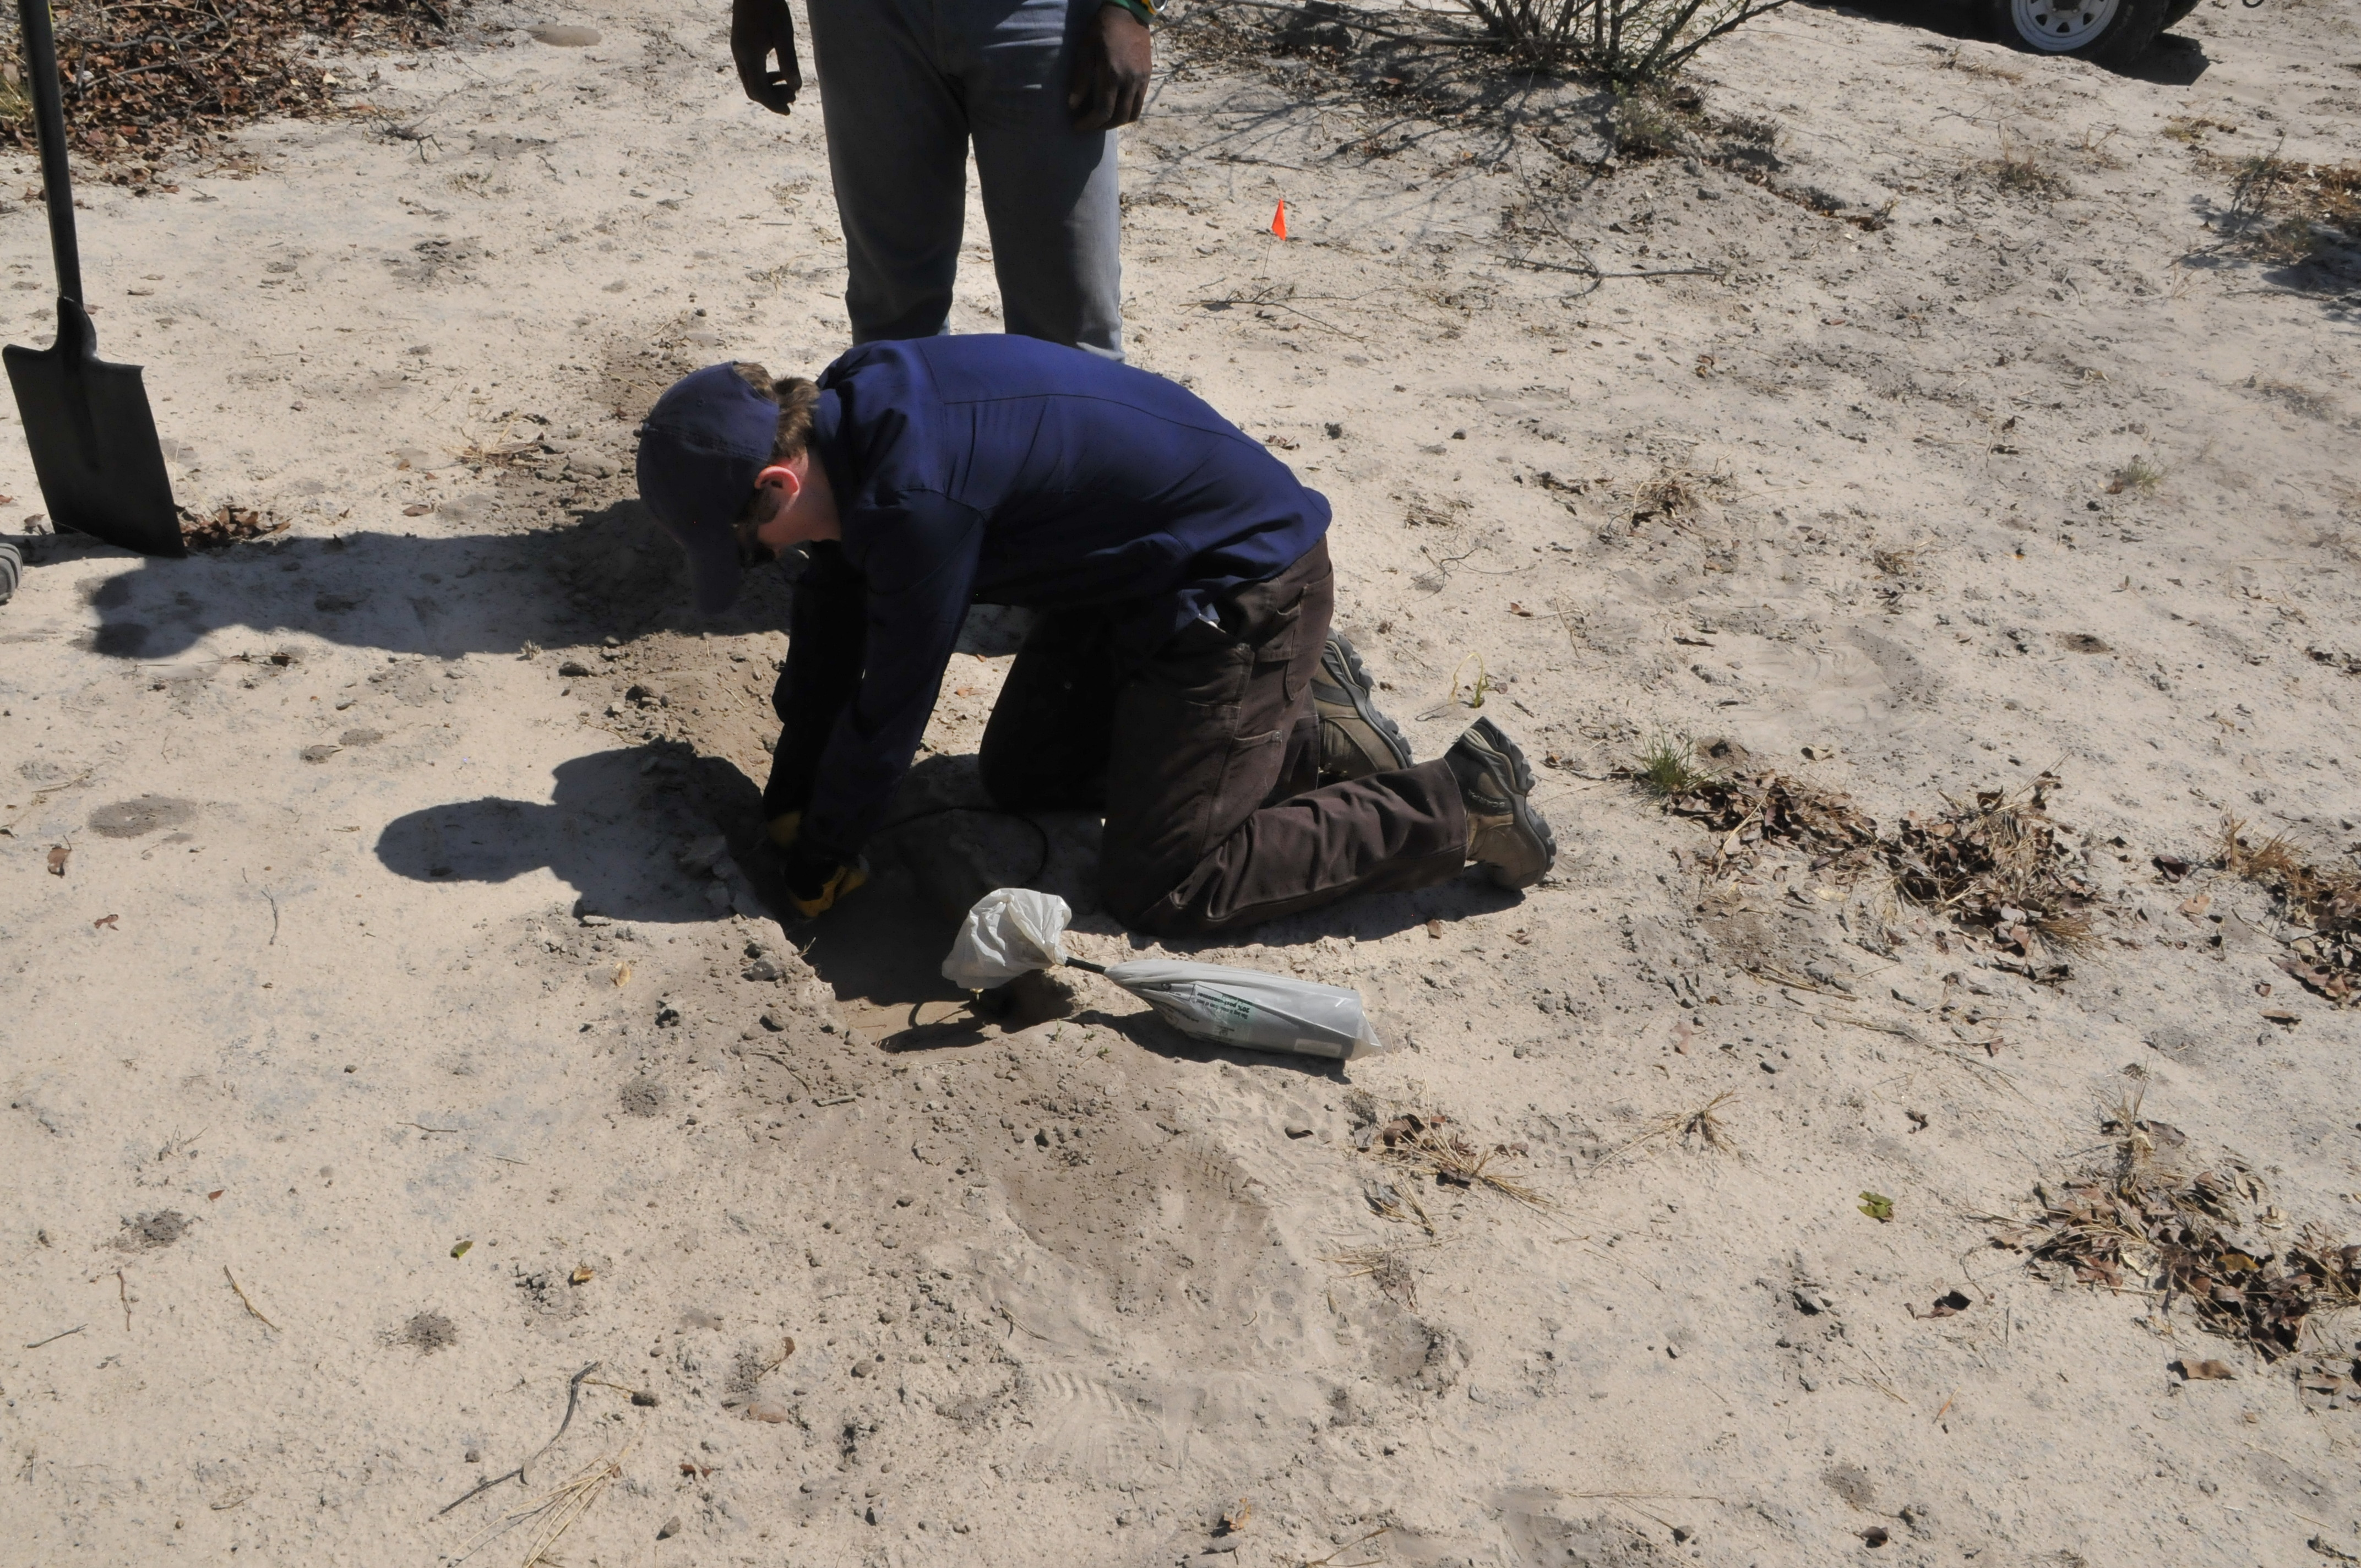 Laura_Stevens_digging_a_hold_to_bury_a_geophone_in_Botswana_close_459333.jpg